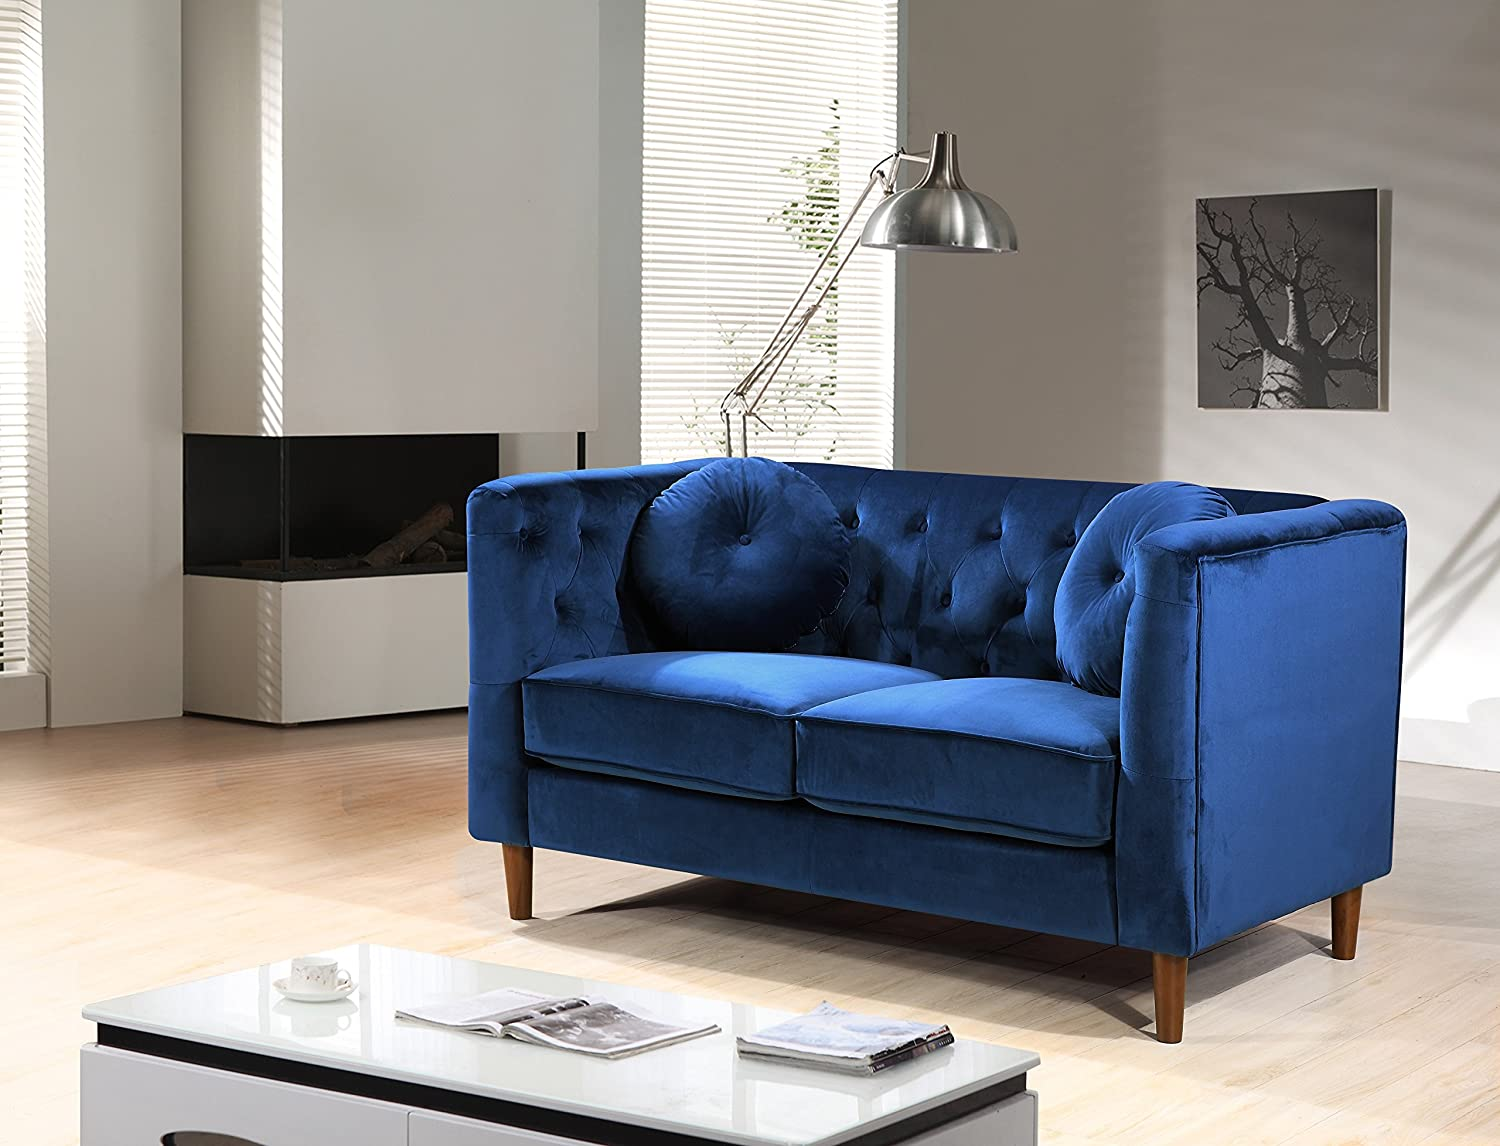 Container Furniture Direct S5423-S+L Catalina Modern 2-Piece Velvet Upholstered Button Tufted Chesterfield Living Room Set Blue